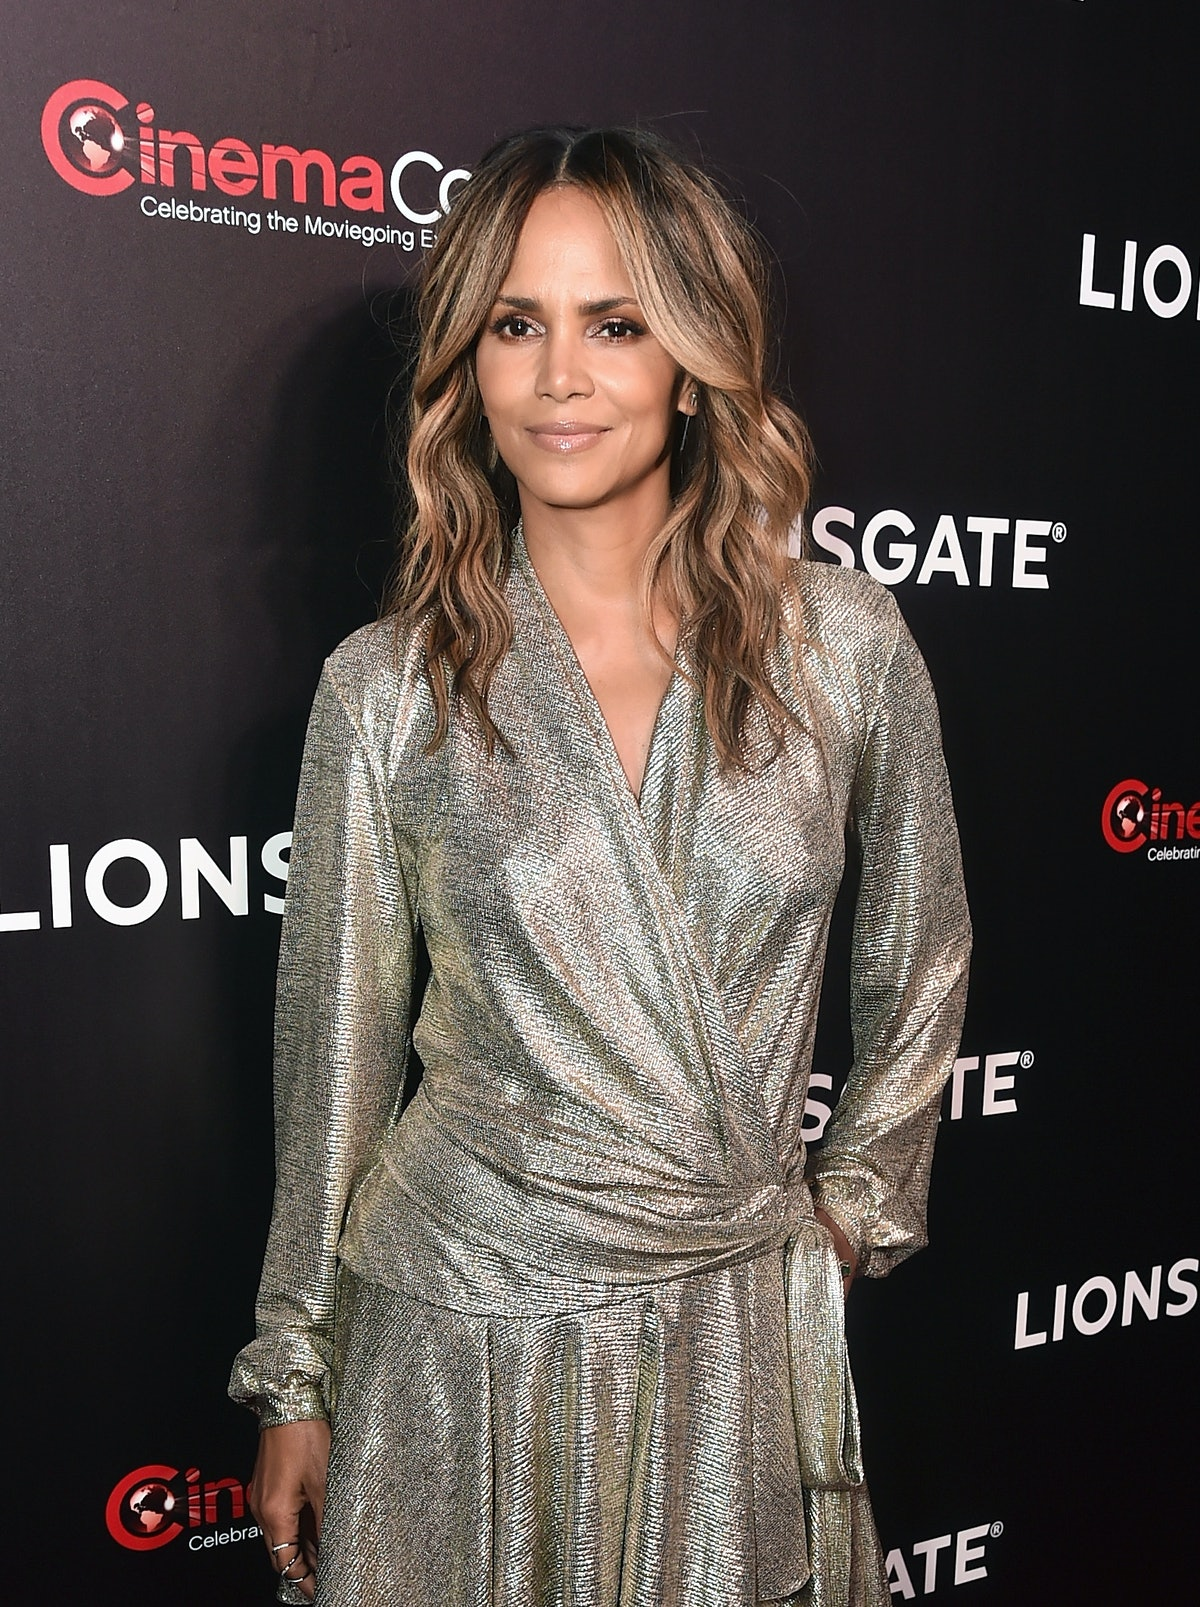 Halle Berry attends CinemaCon in April 2019.